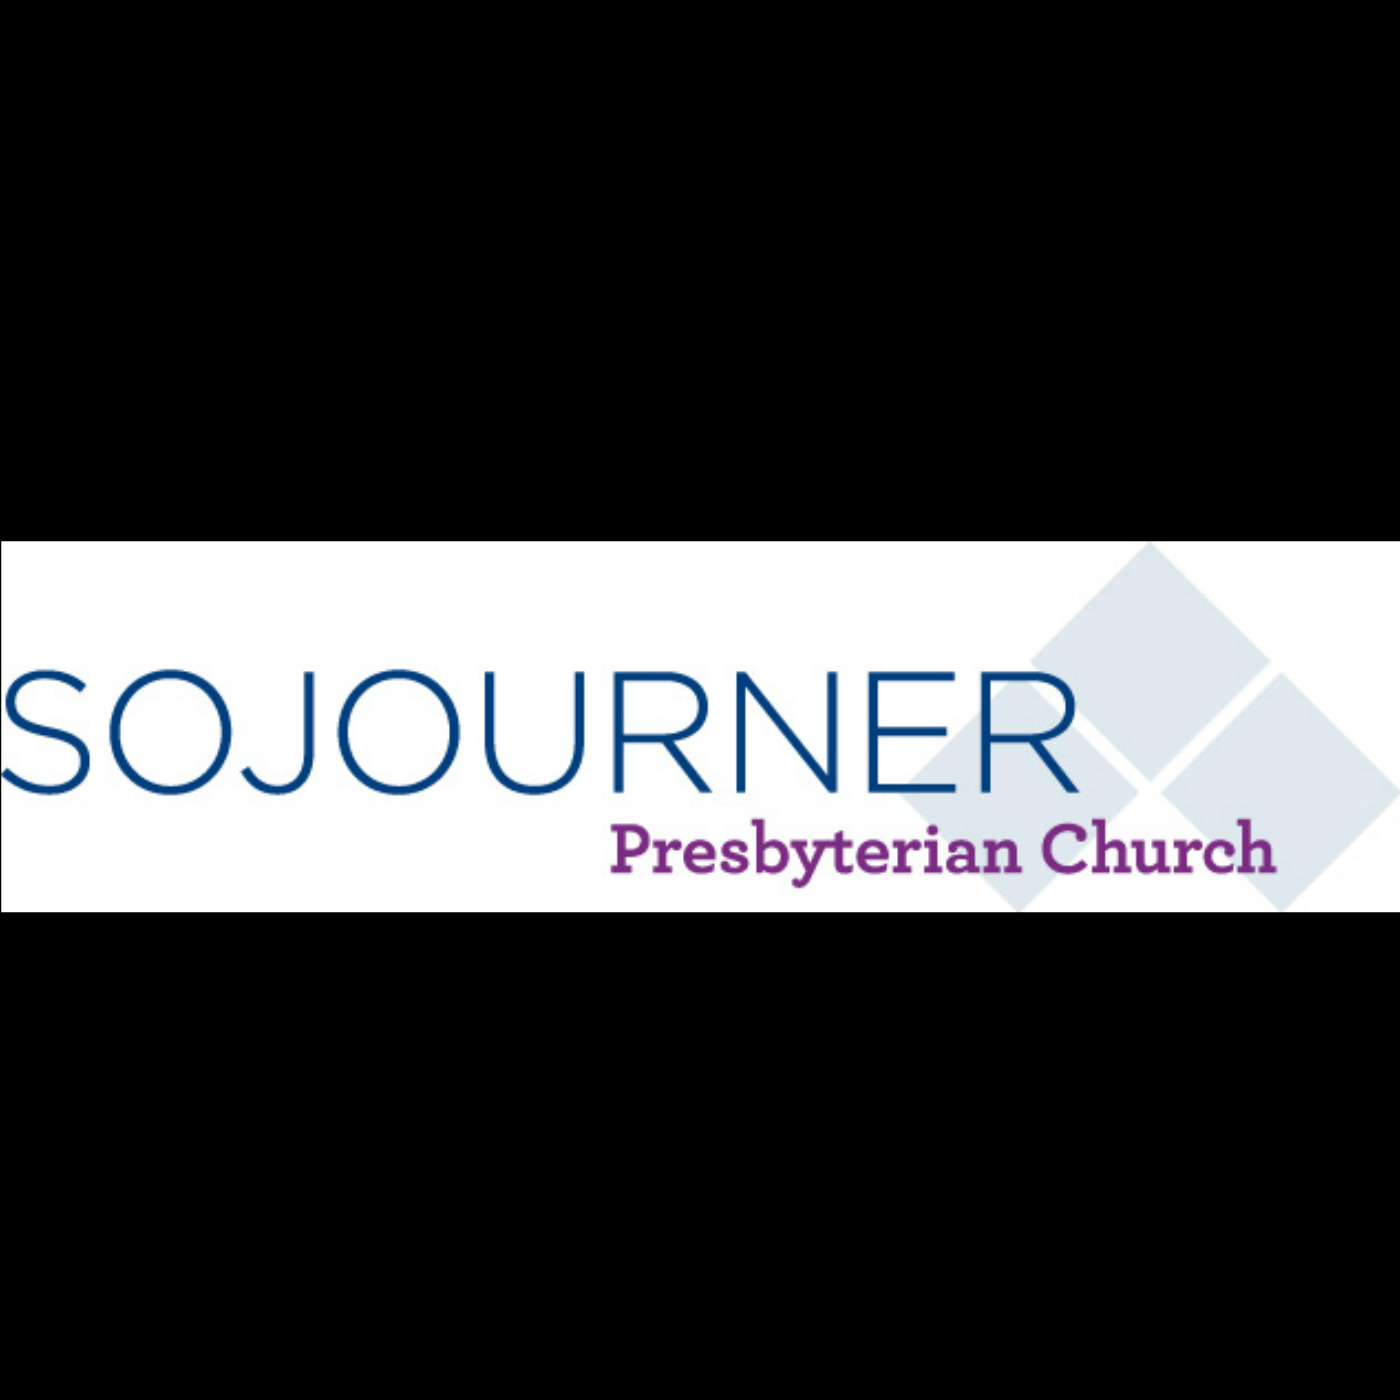 Sojourner Presbyterian Church